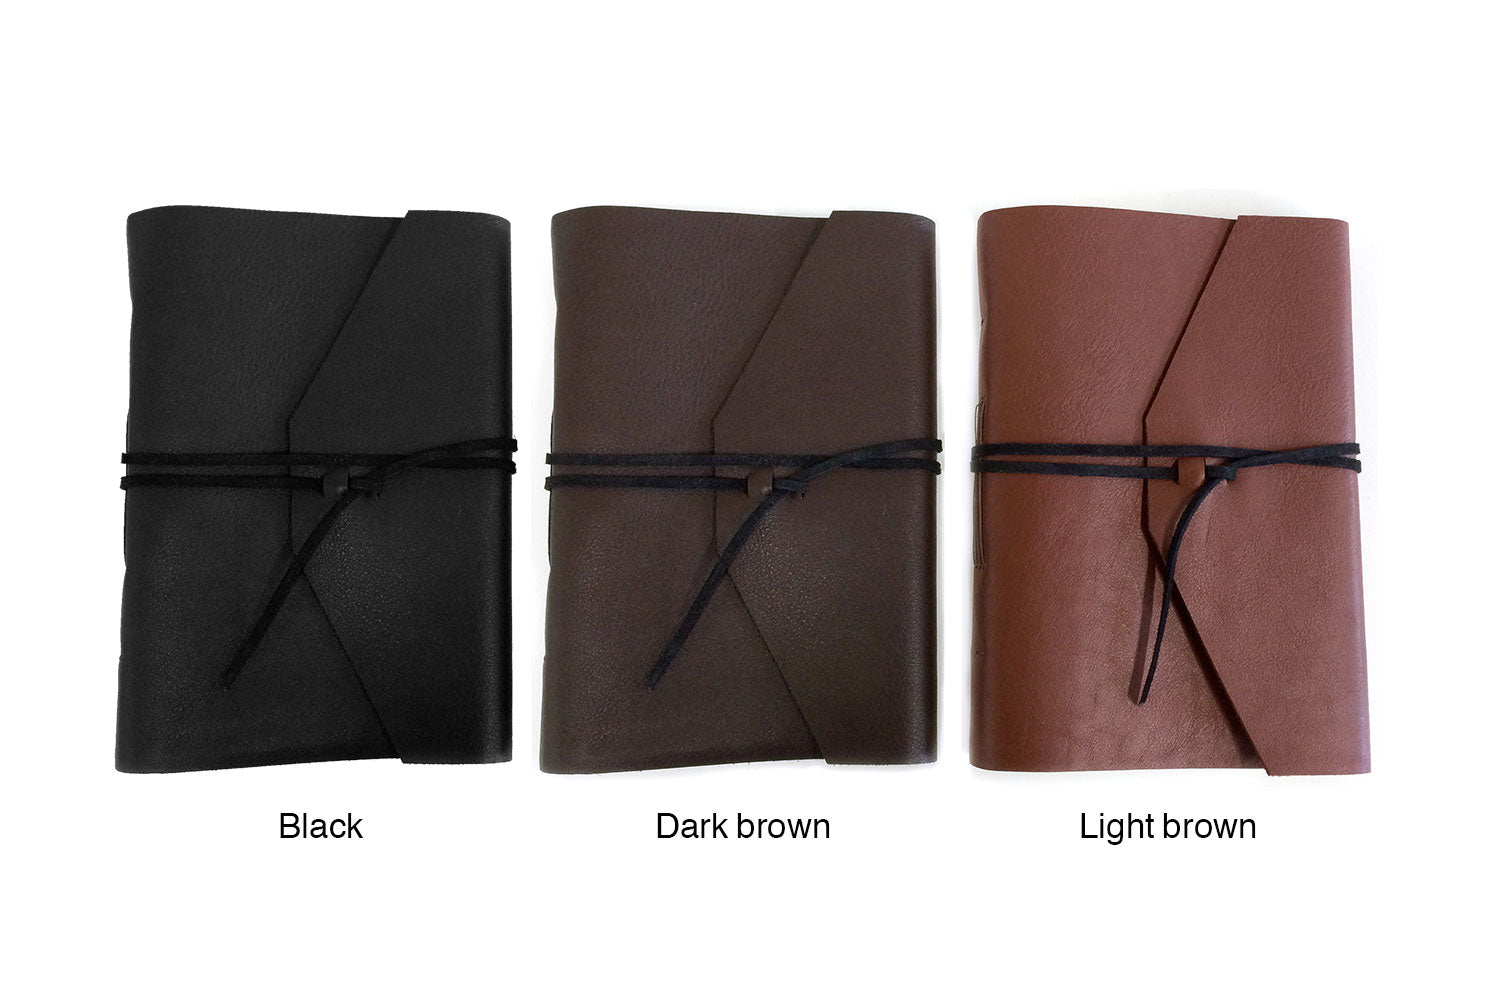 Personalized leather journal in black leather, dark brown leather, or light brown leather, from Bookshell bindery